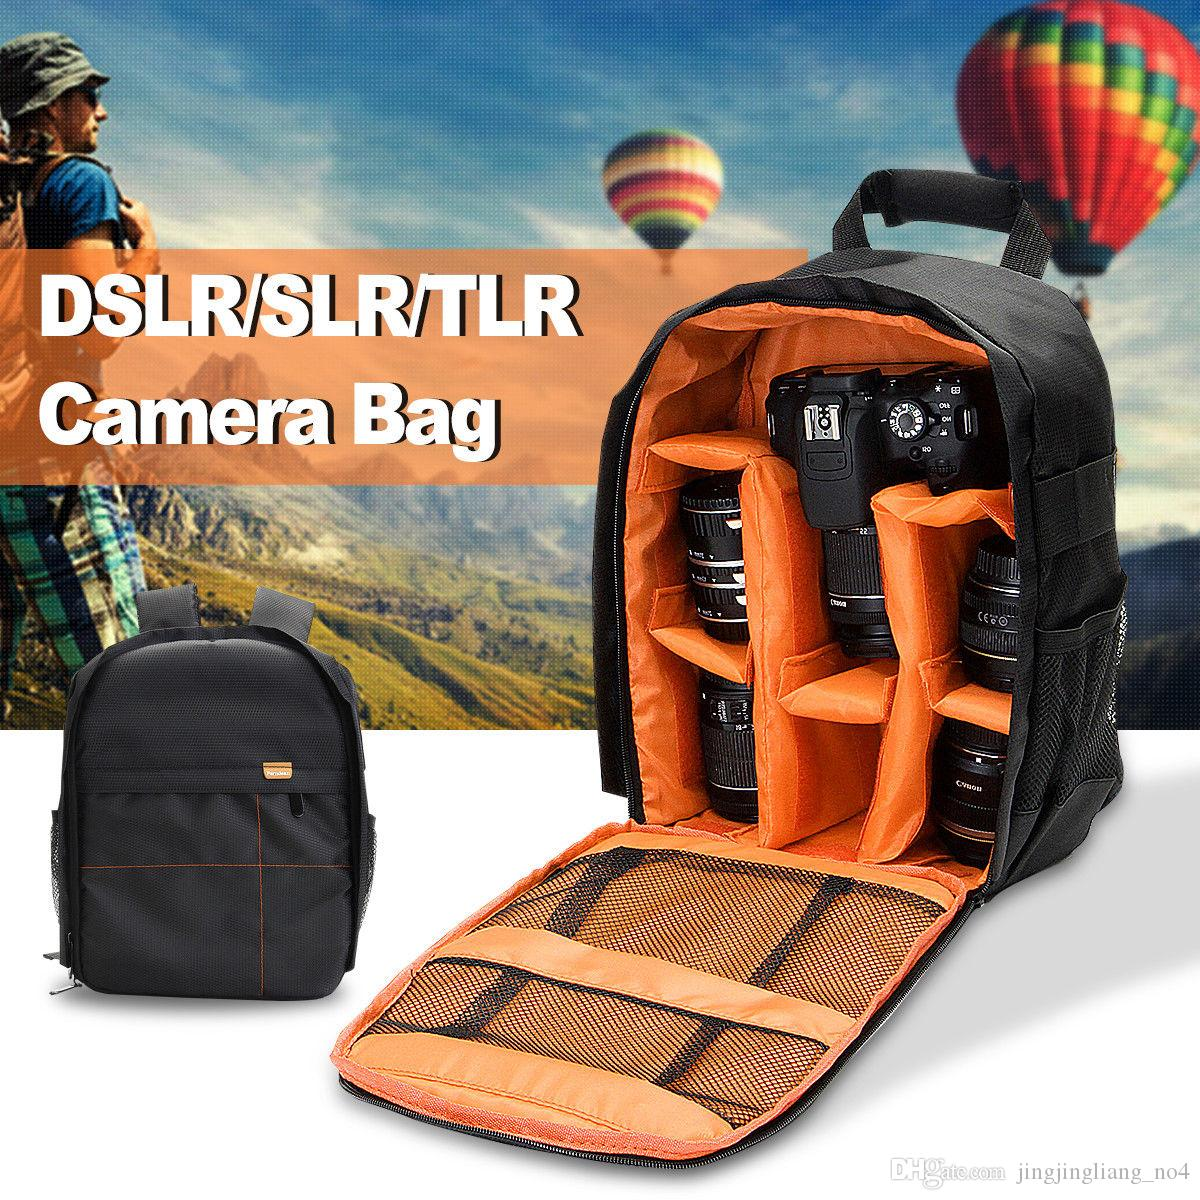 Waterproof Digital Camera Bag DSLR Video Backpack Small SLR Camera Rucksack for Nikon Canon Fujifilm Sony Cameras LJJM43